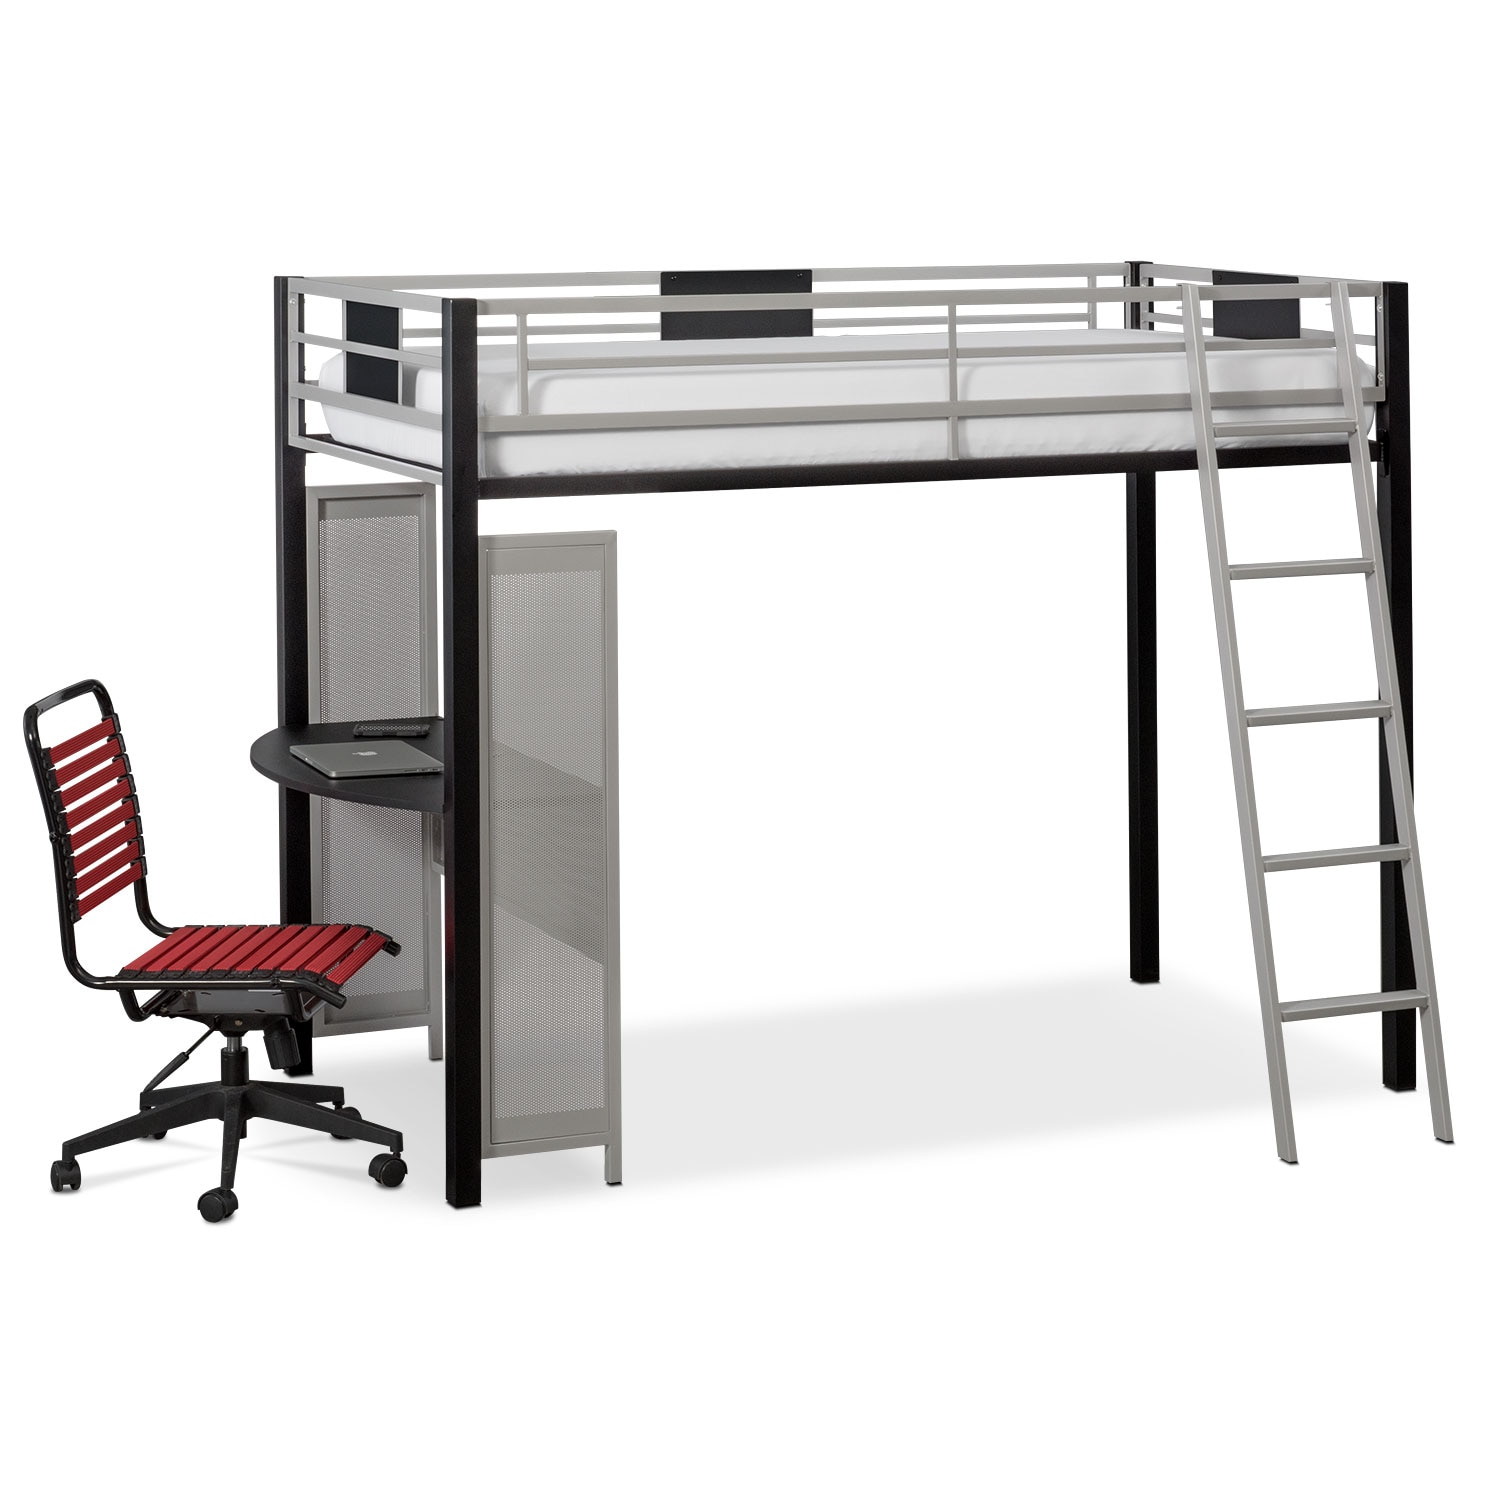 Bedroom Furniture - Samba Youth Twin Loft Bed with Desk - Matte Black